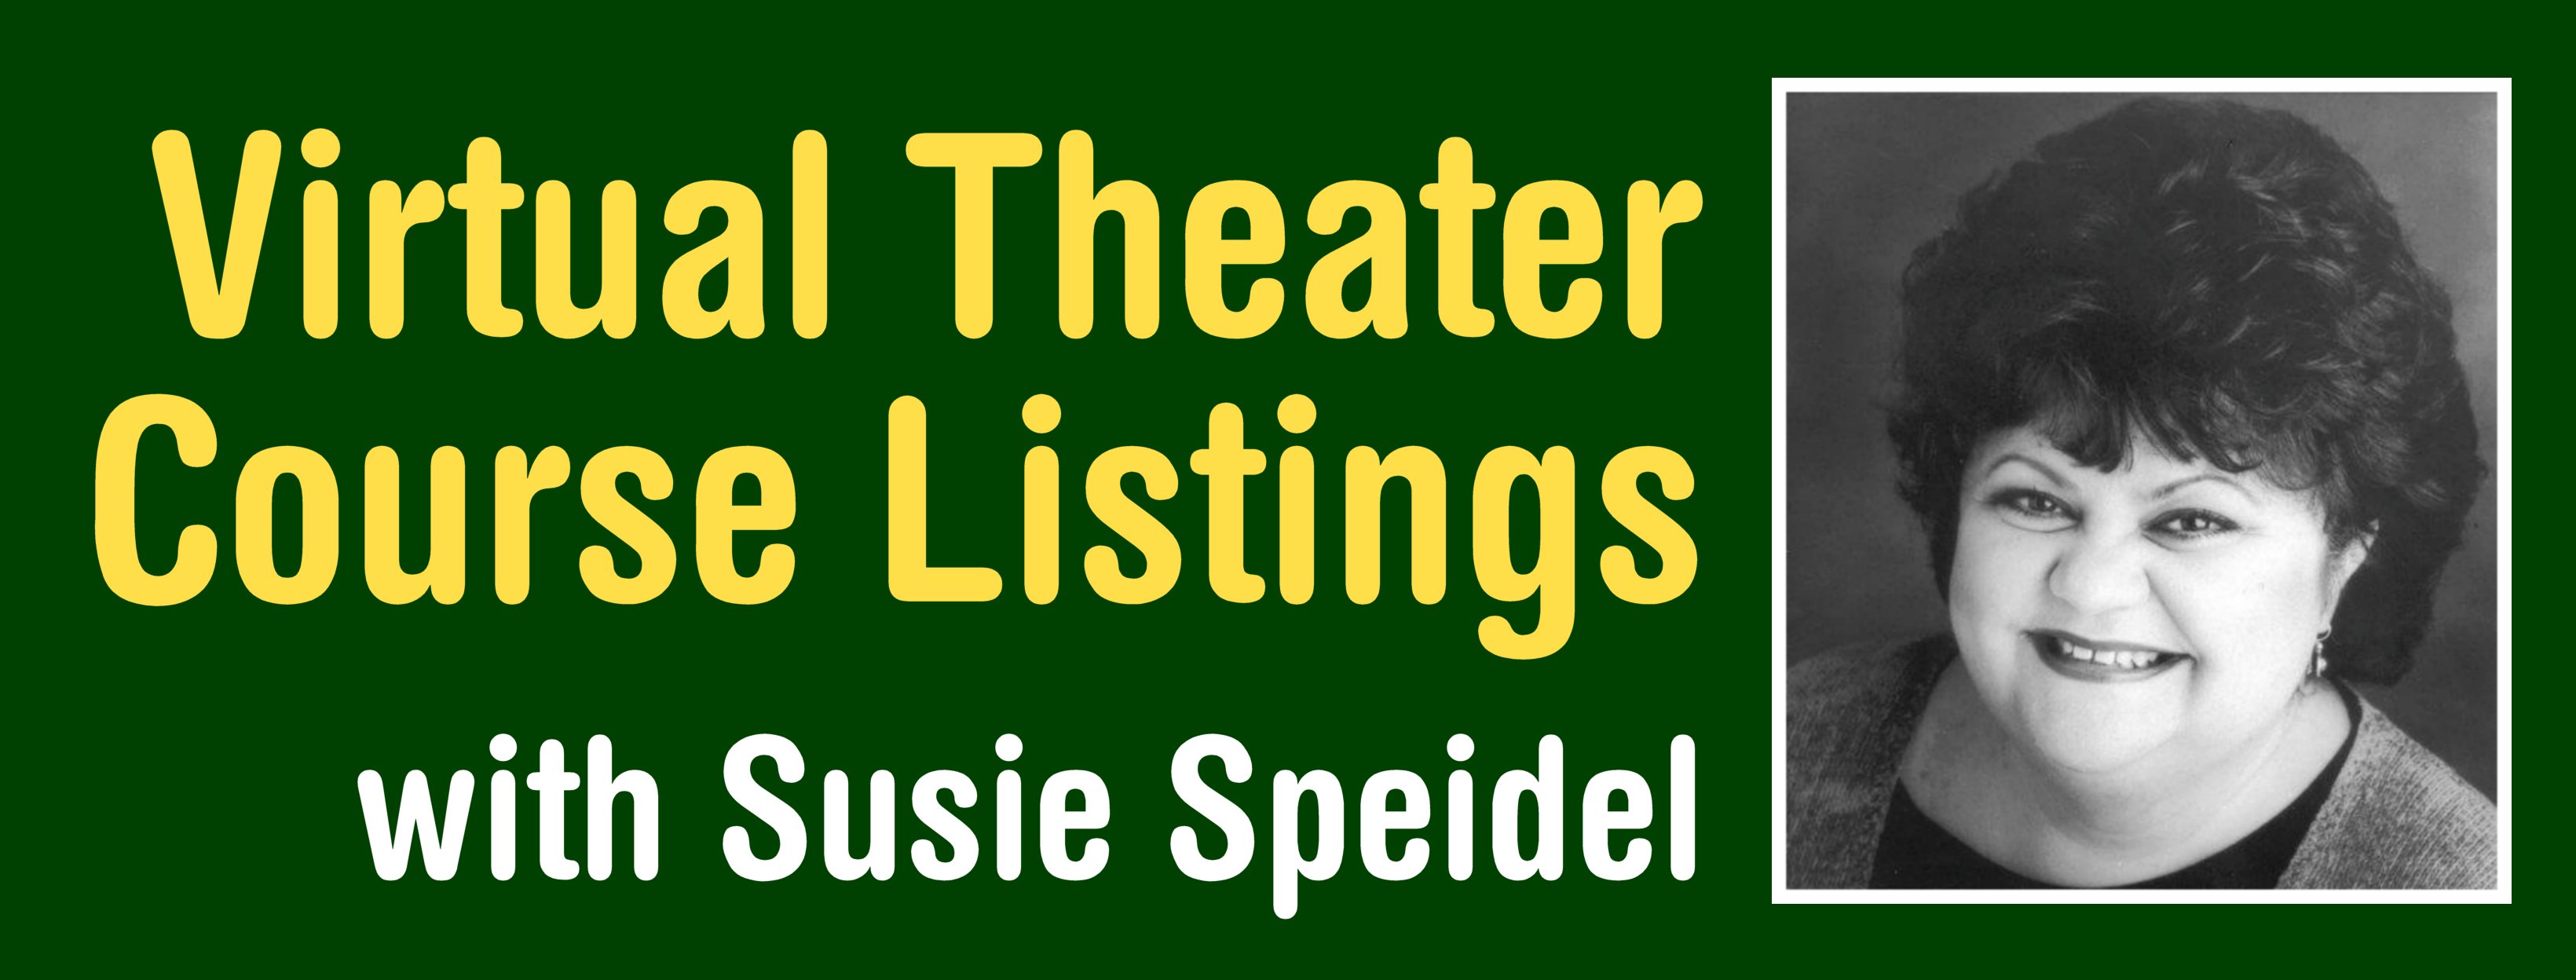 Virtual Theater with Susan Speidel